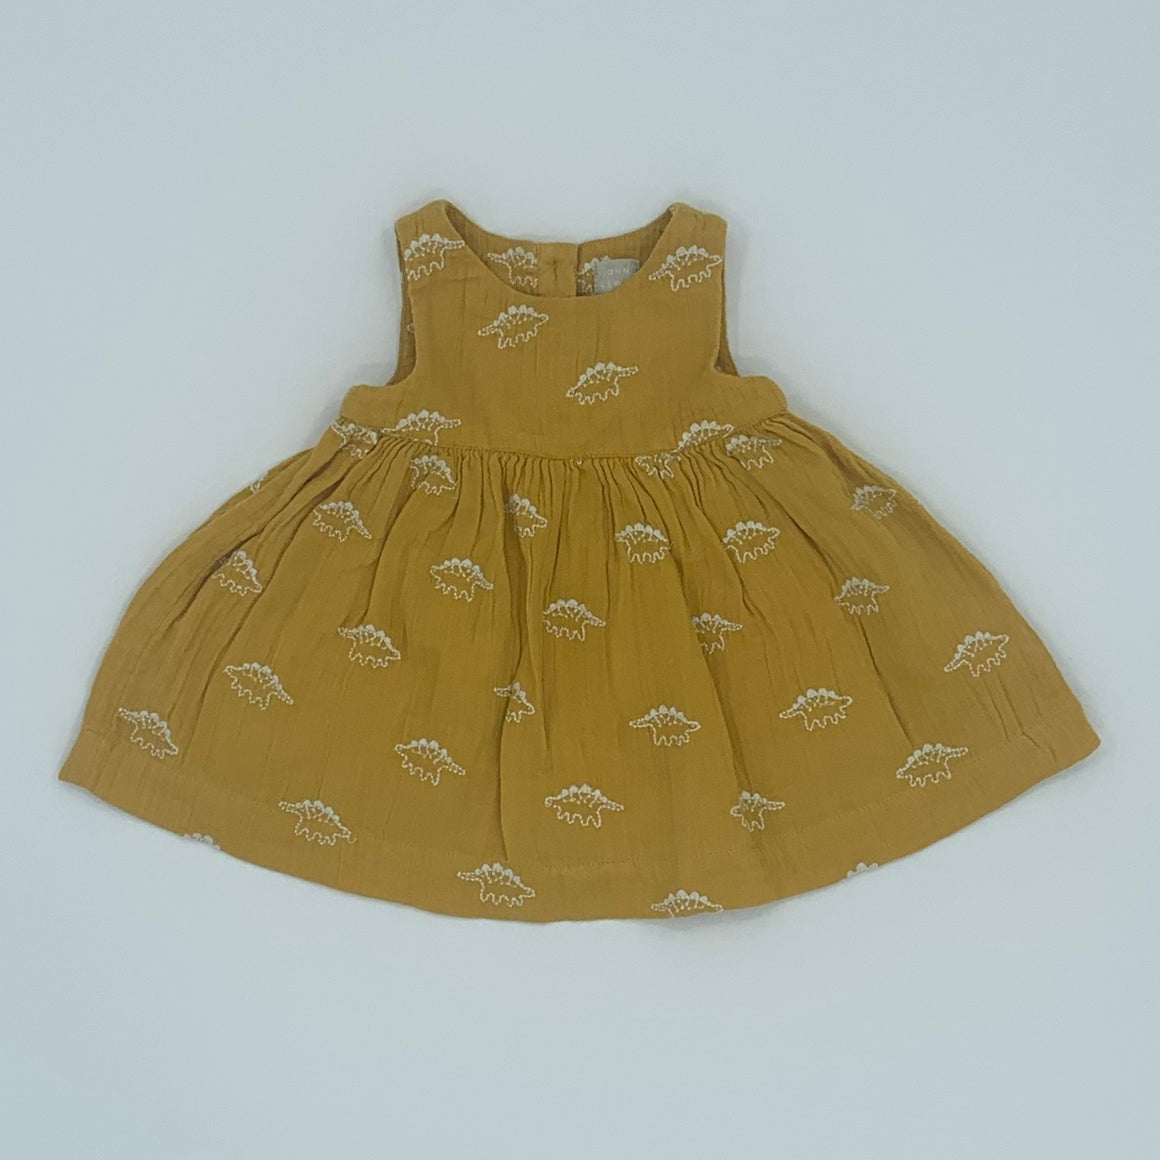 Hardly Worn John Lewis dinosaur dress size 0-3 months